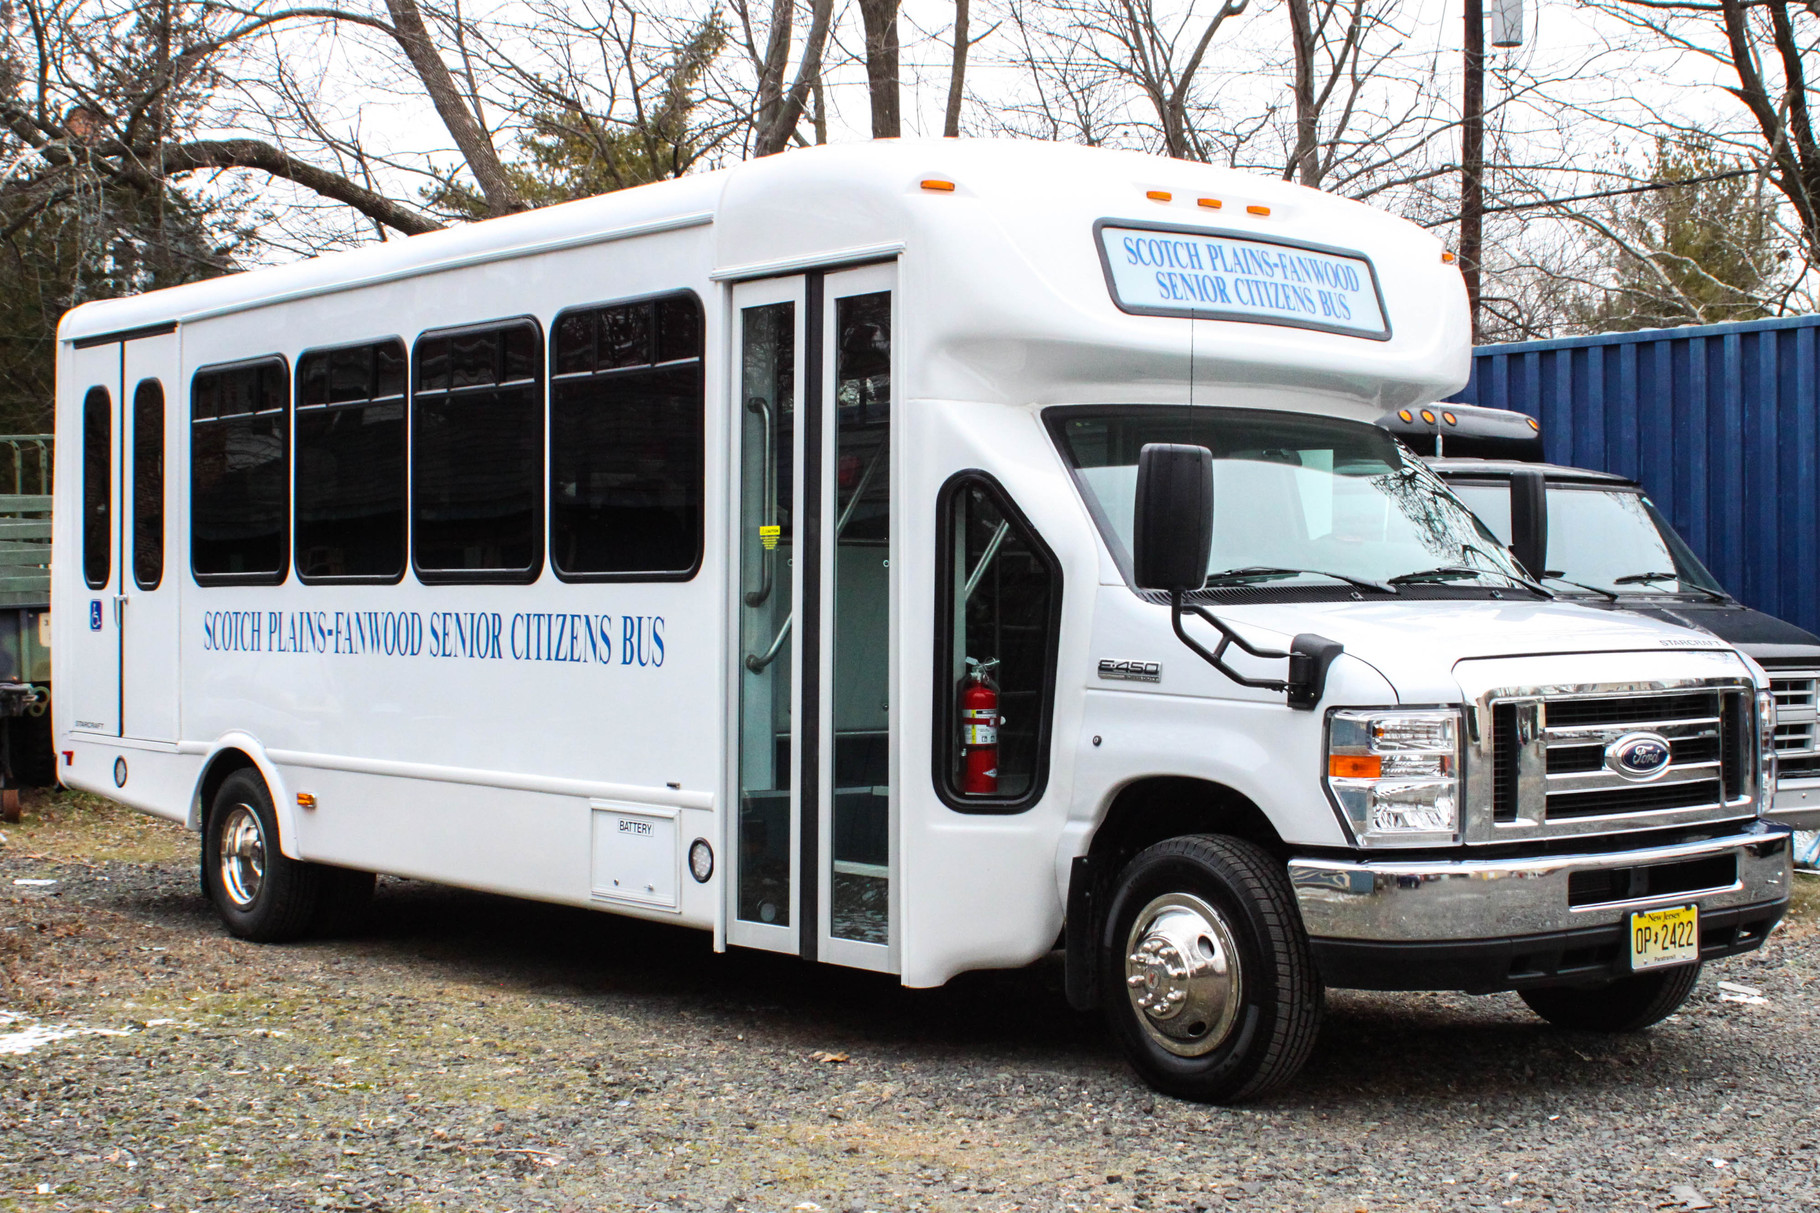 The new Scotch Plains-Fanwood senior citizen bus features 18 passenger seats and a hydraulic lift for handicapped accessibility